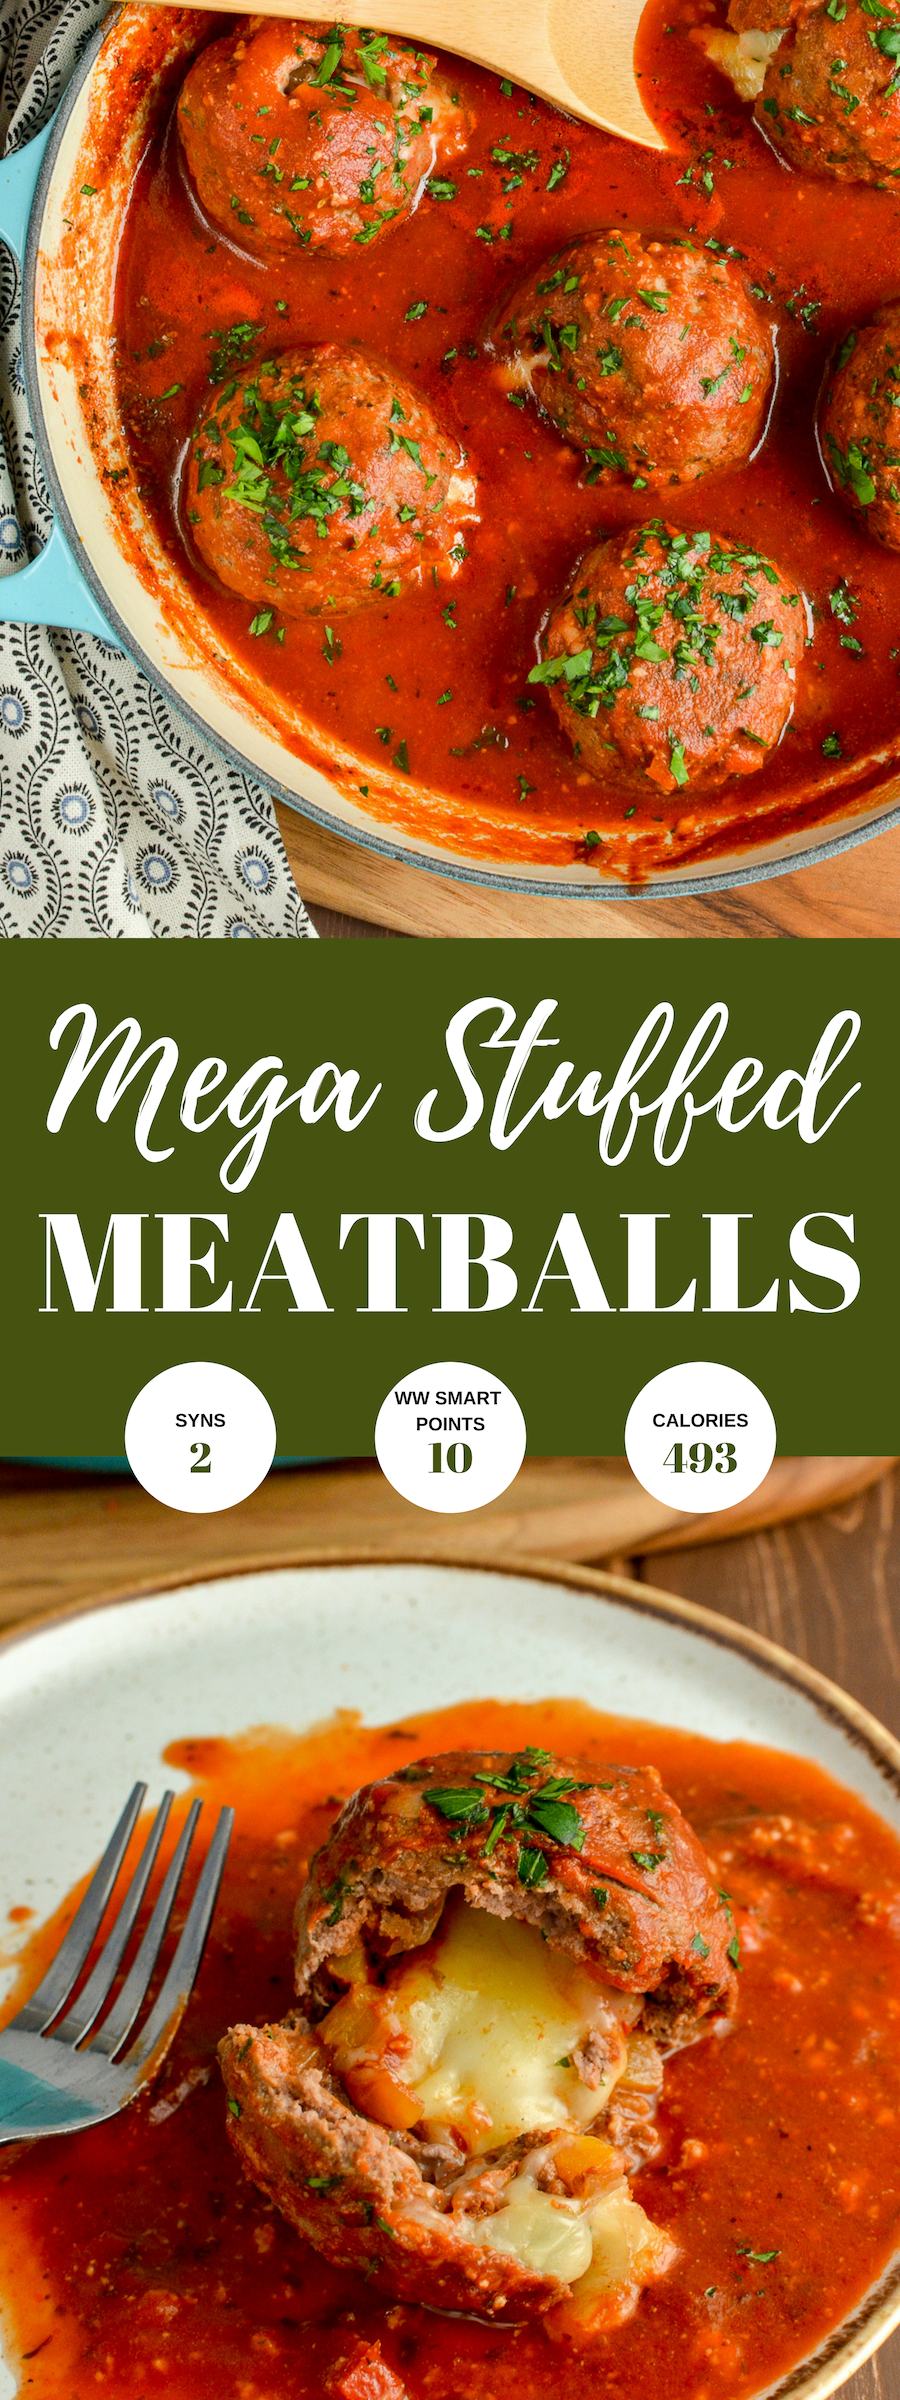 MEGA STUFFED MEATBALLS PIN IMAGE